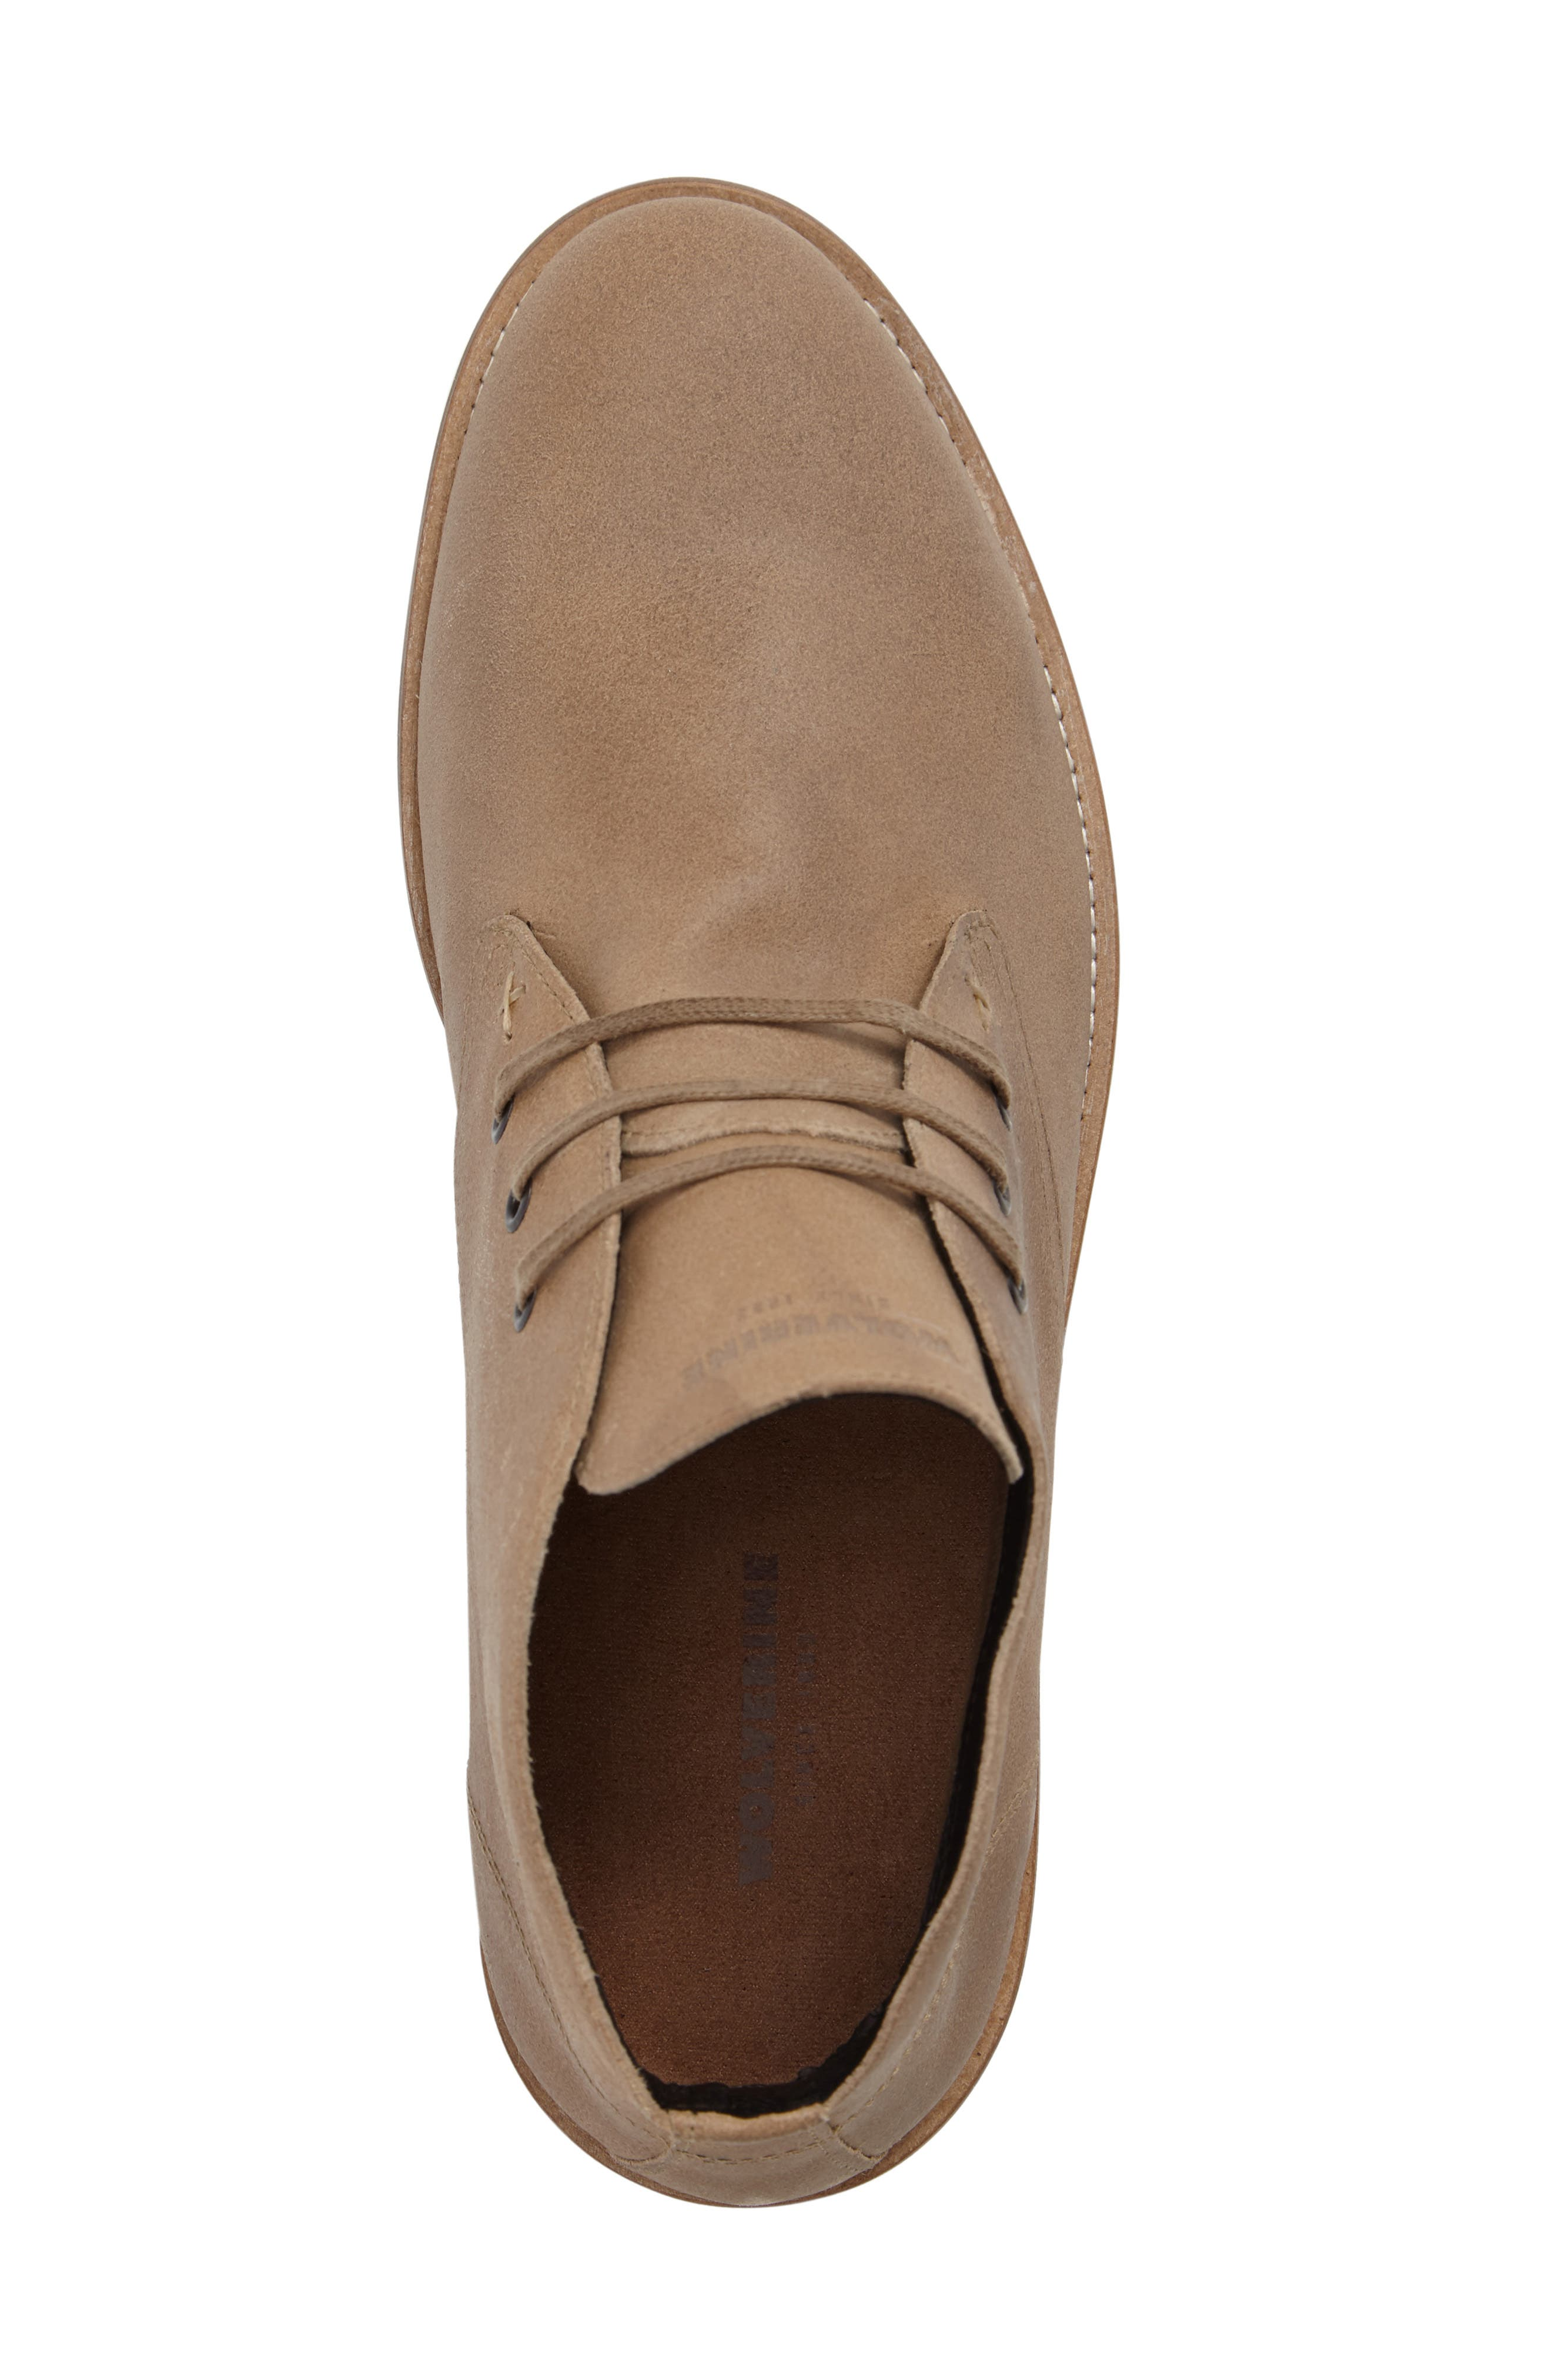 Gibson Chukka Boot,                             Alternate thumbnail 5, color,                             200